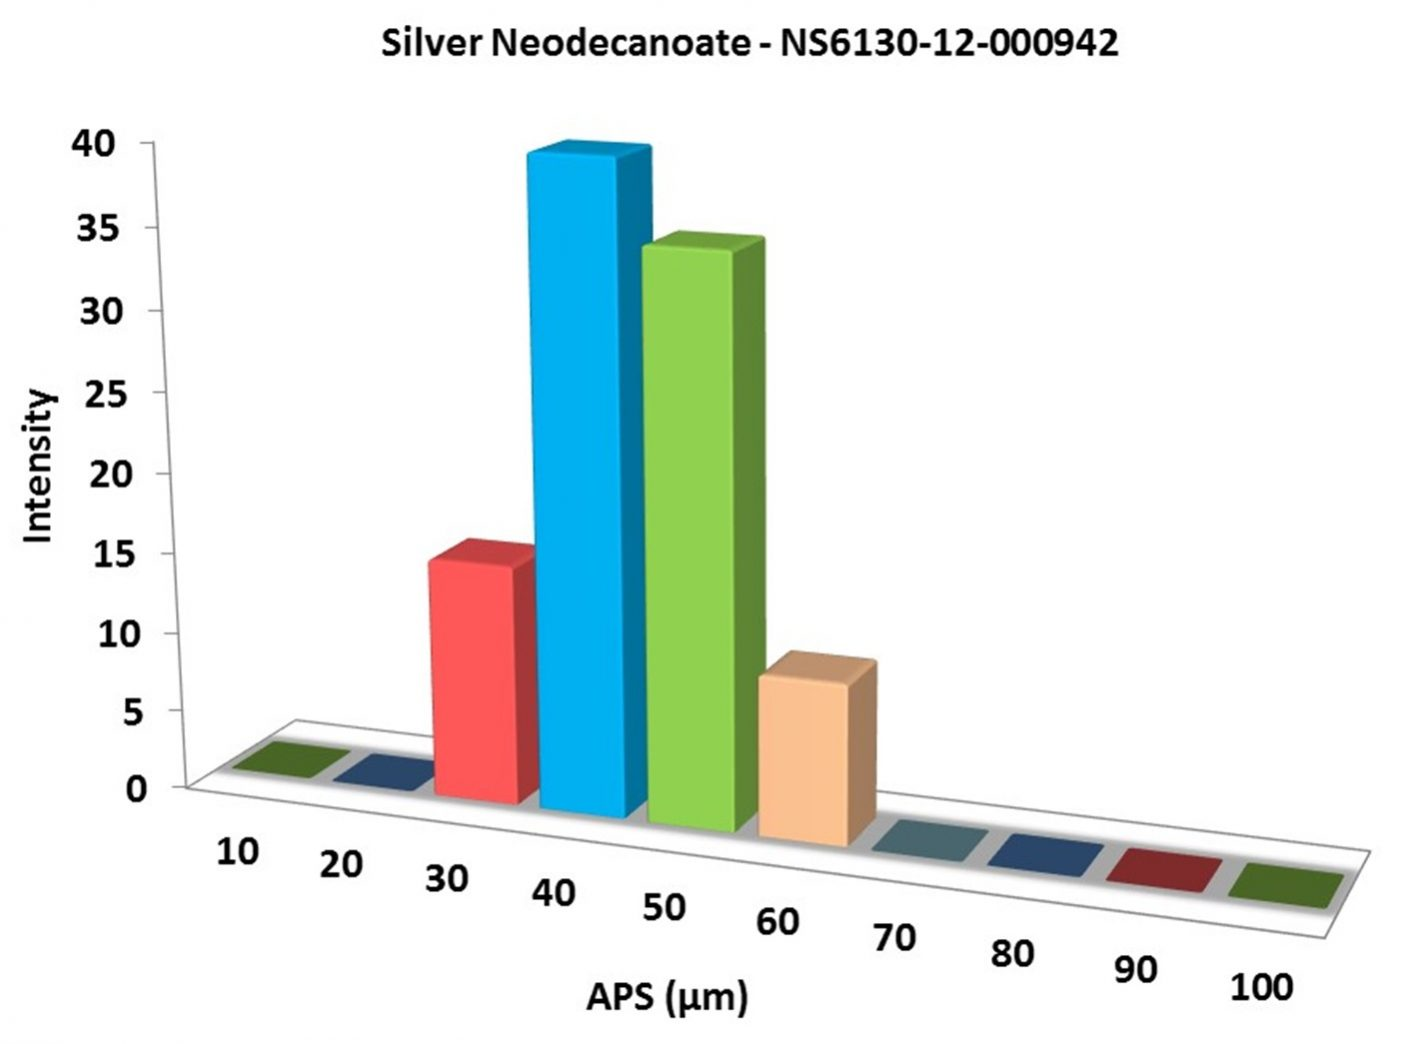 Silver Neodecanoate